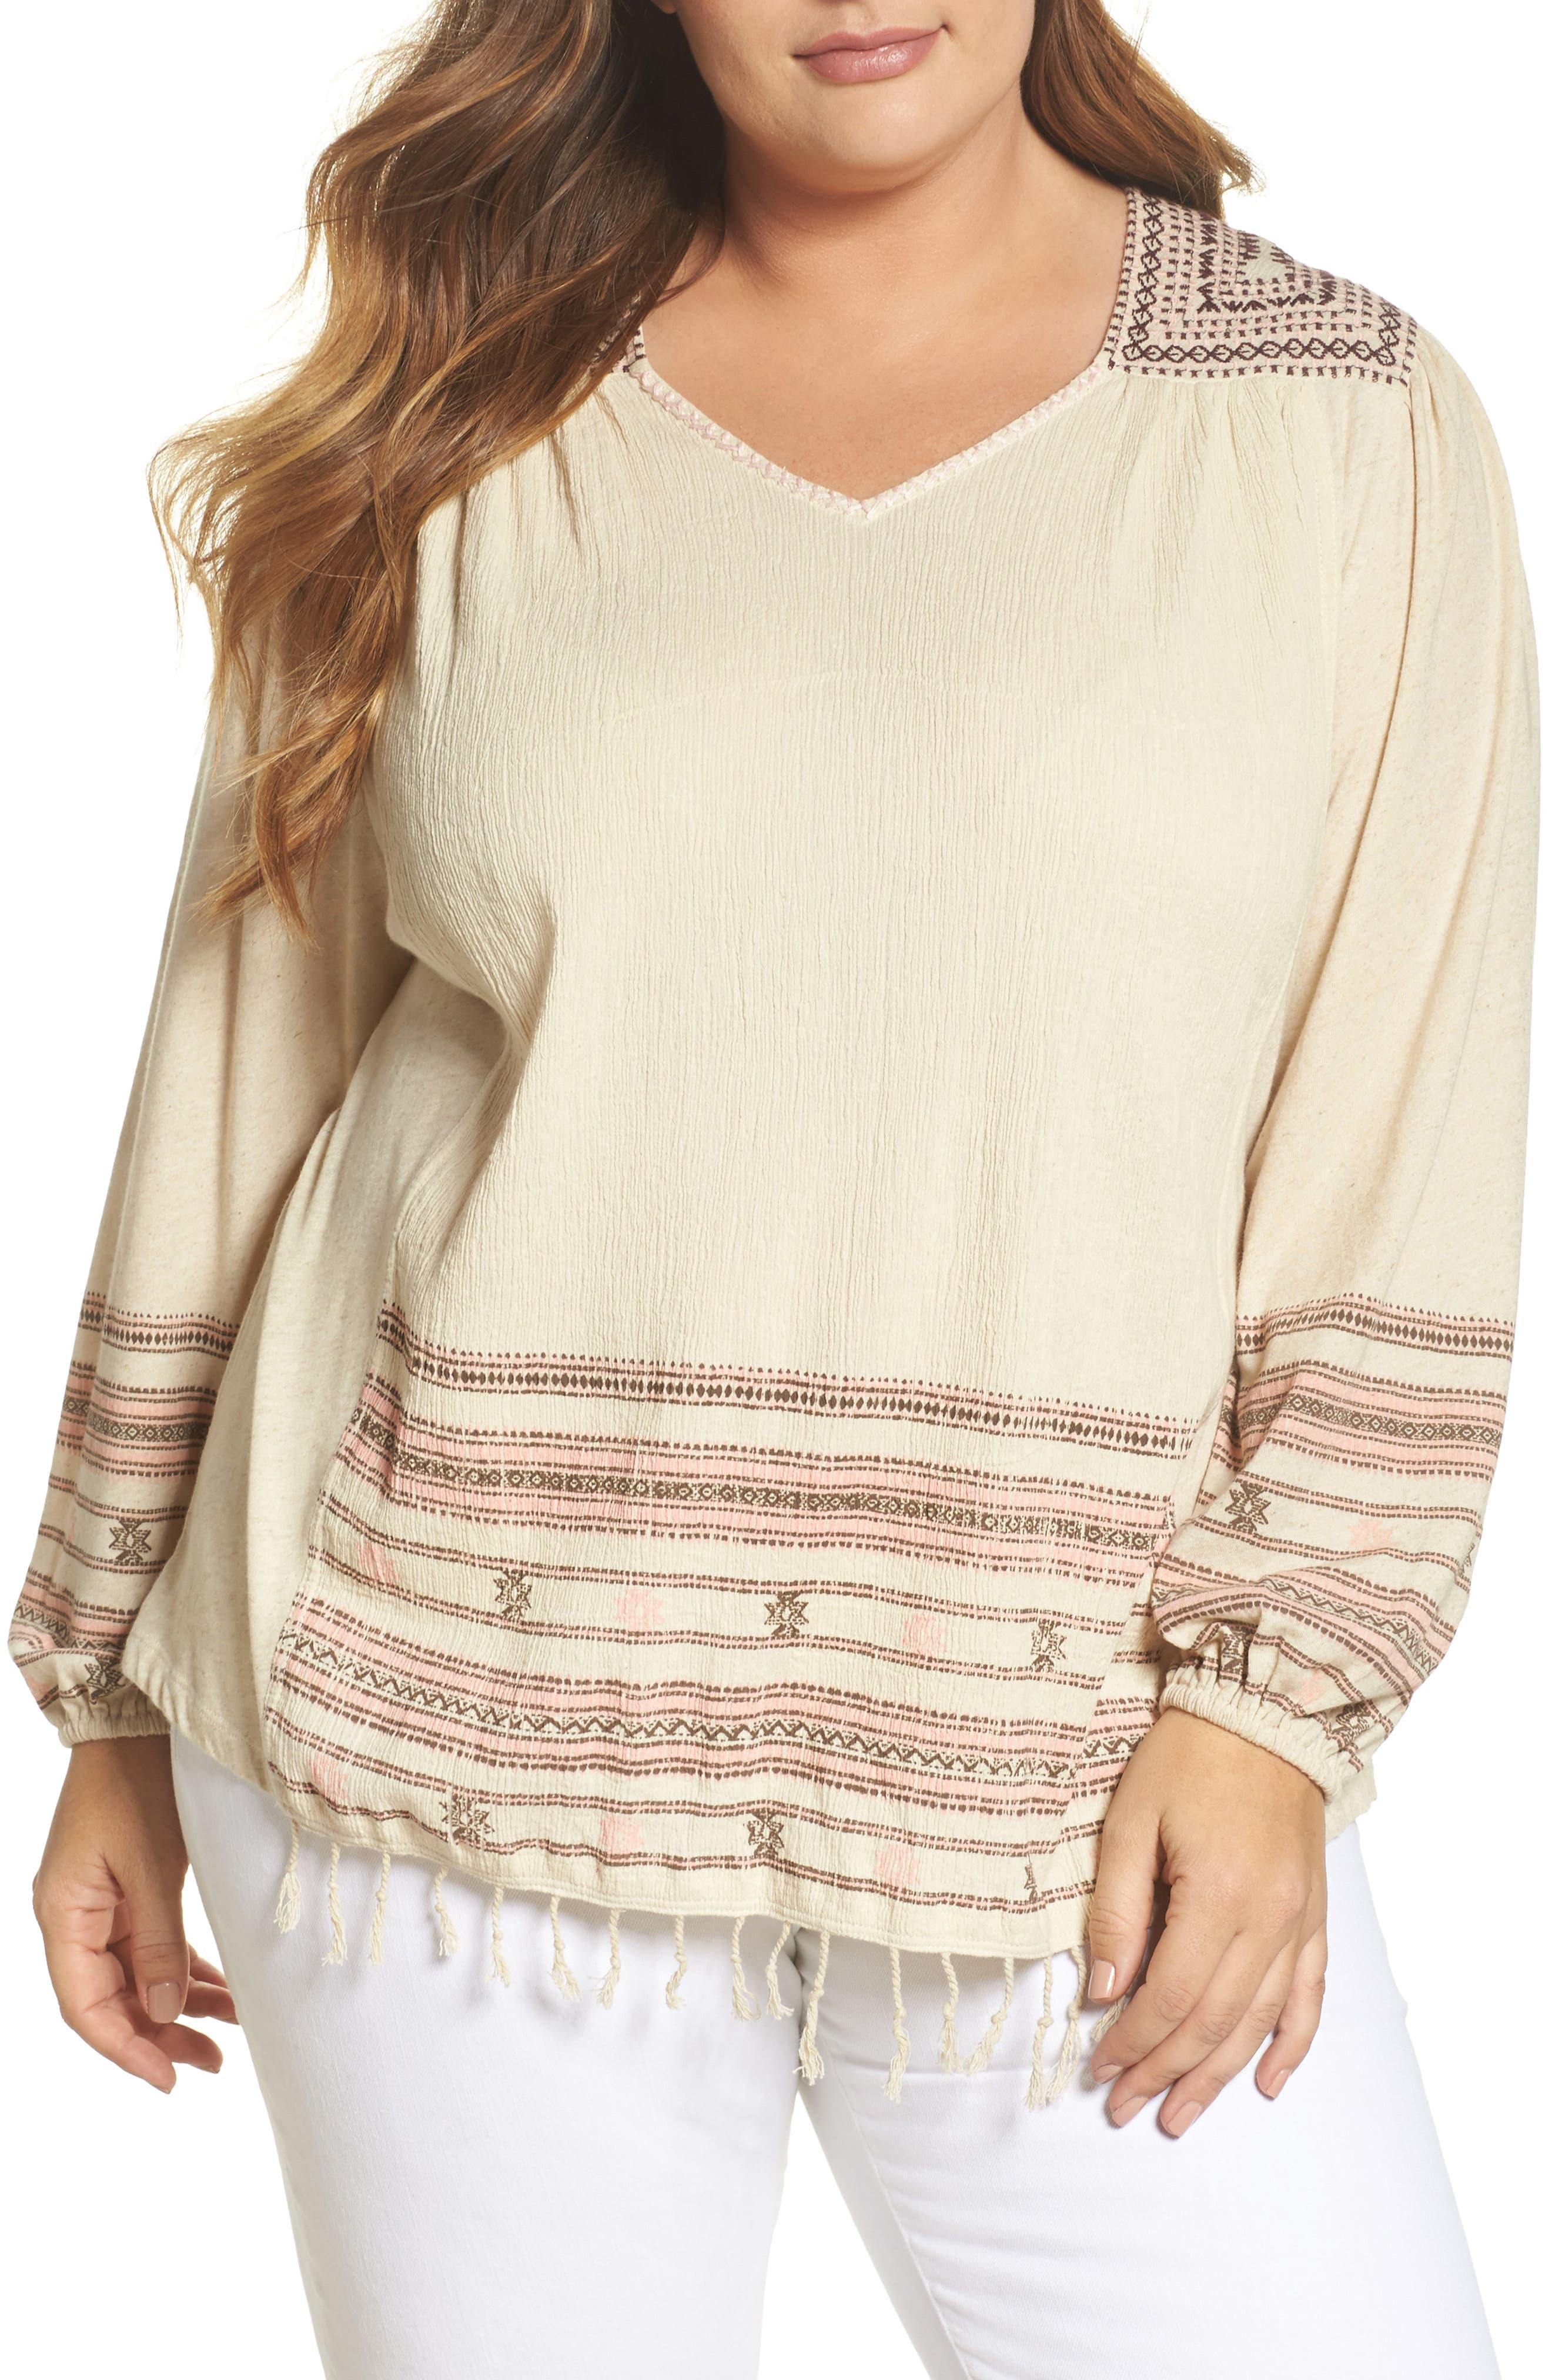 Lucky Brand Market Embroidered Peasant Top (Plus Size)